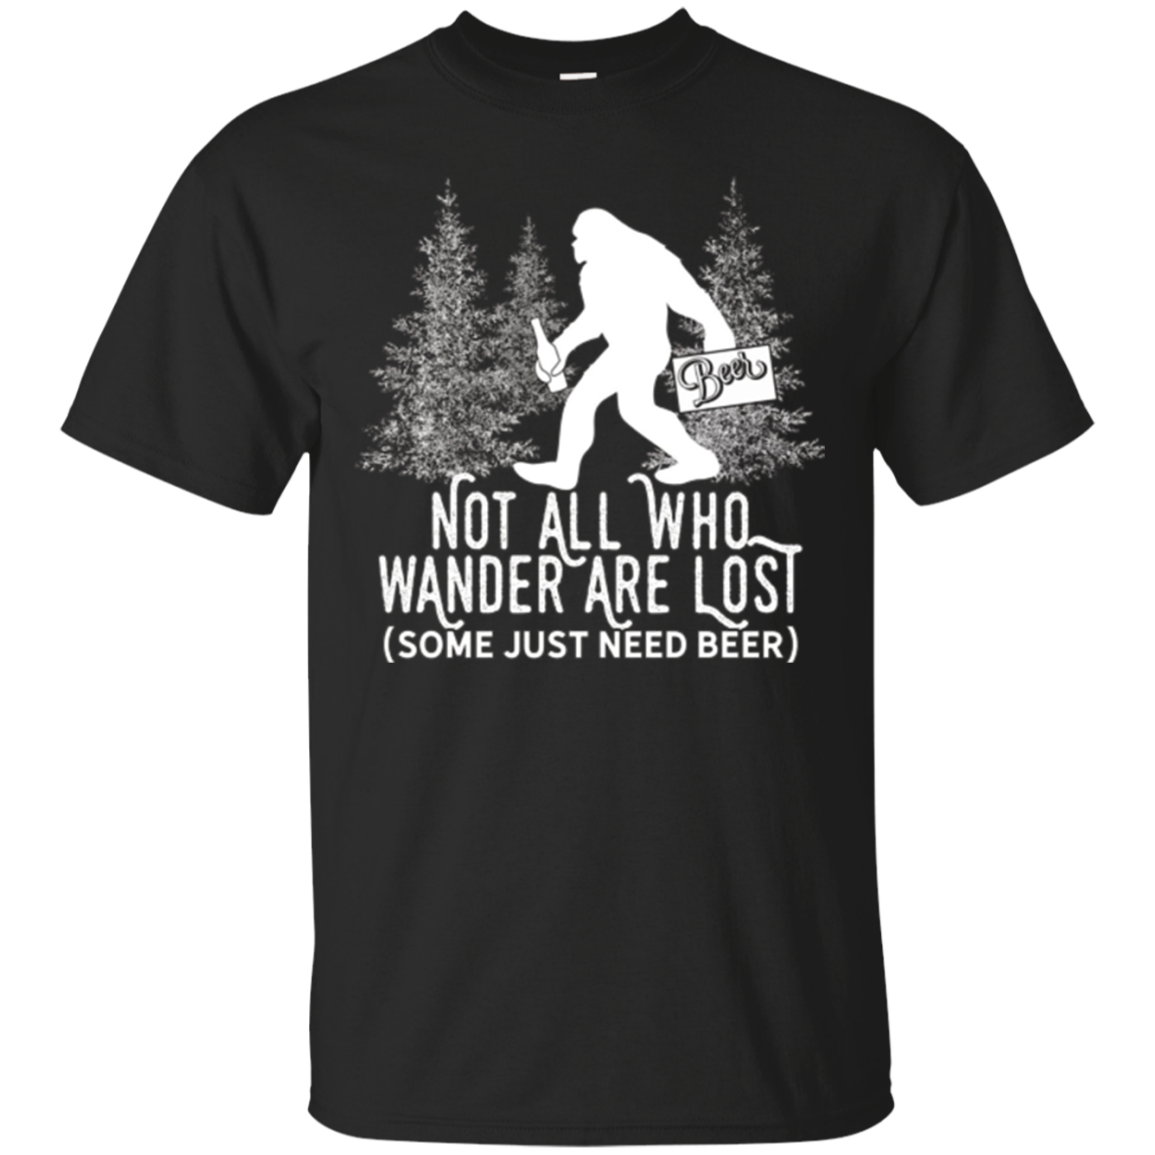 Bigfoot on a Beer Run T-Shirt Not All Who Wander Are Lost